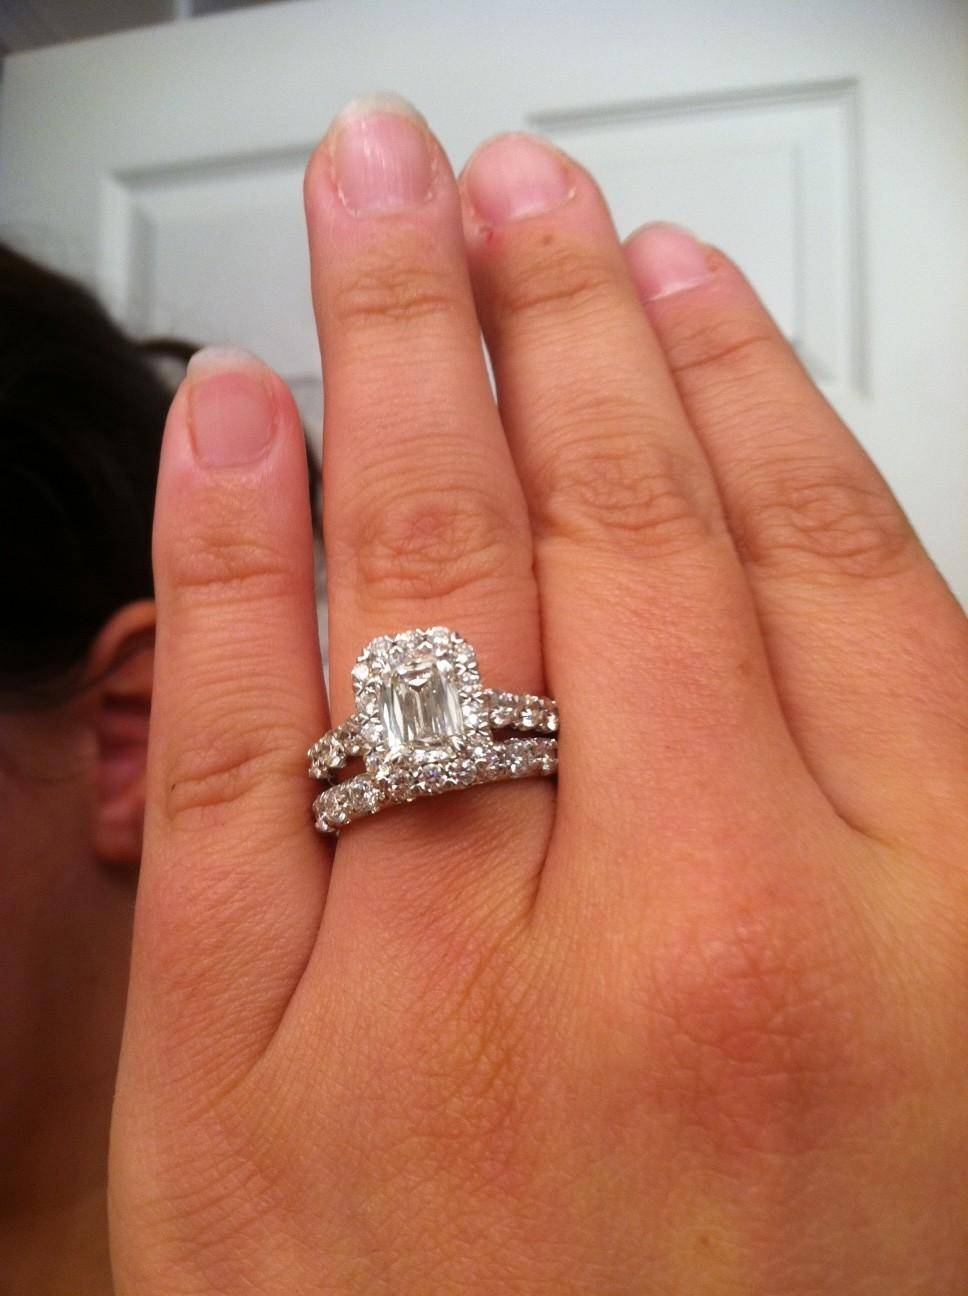 Engagement Rings : Beautiful Engagement Ring Costco Costco Regarding Costco Princess Cut Engagement Rings (View 5 of 15)